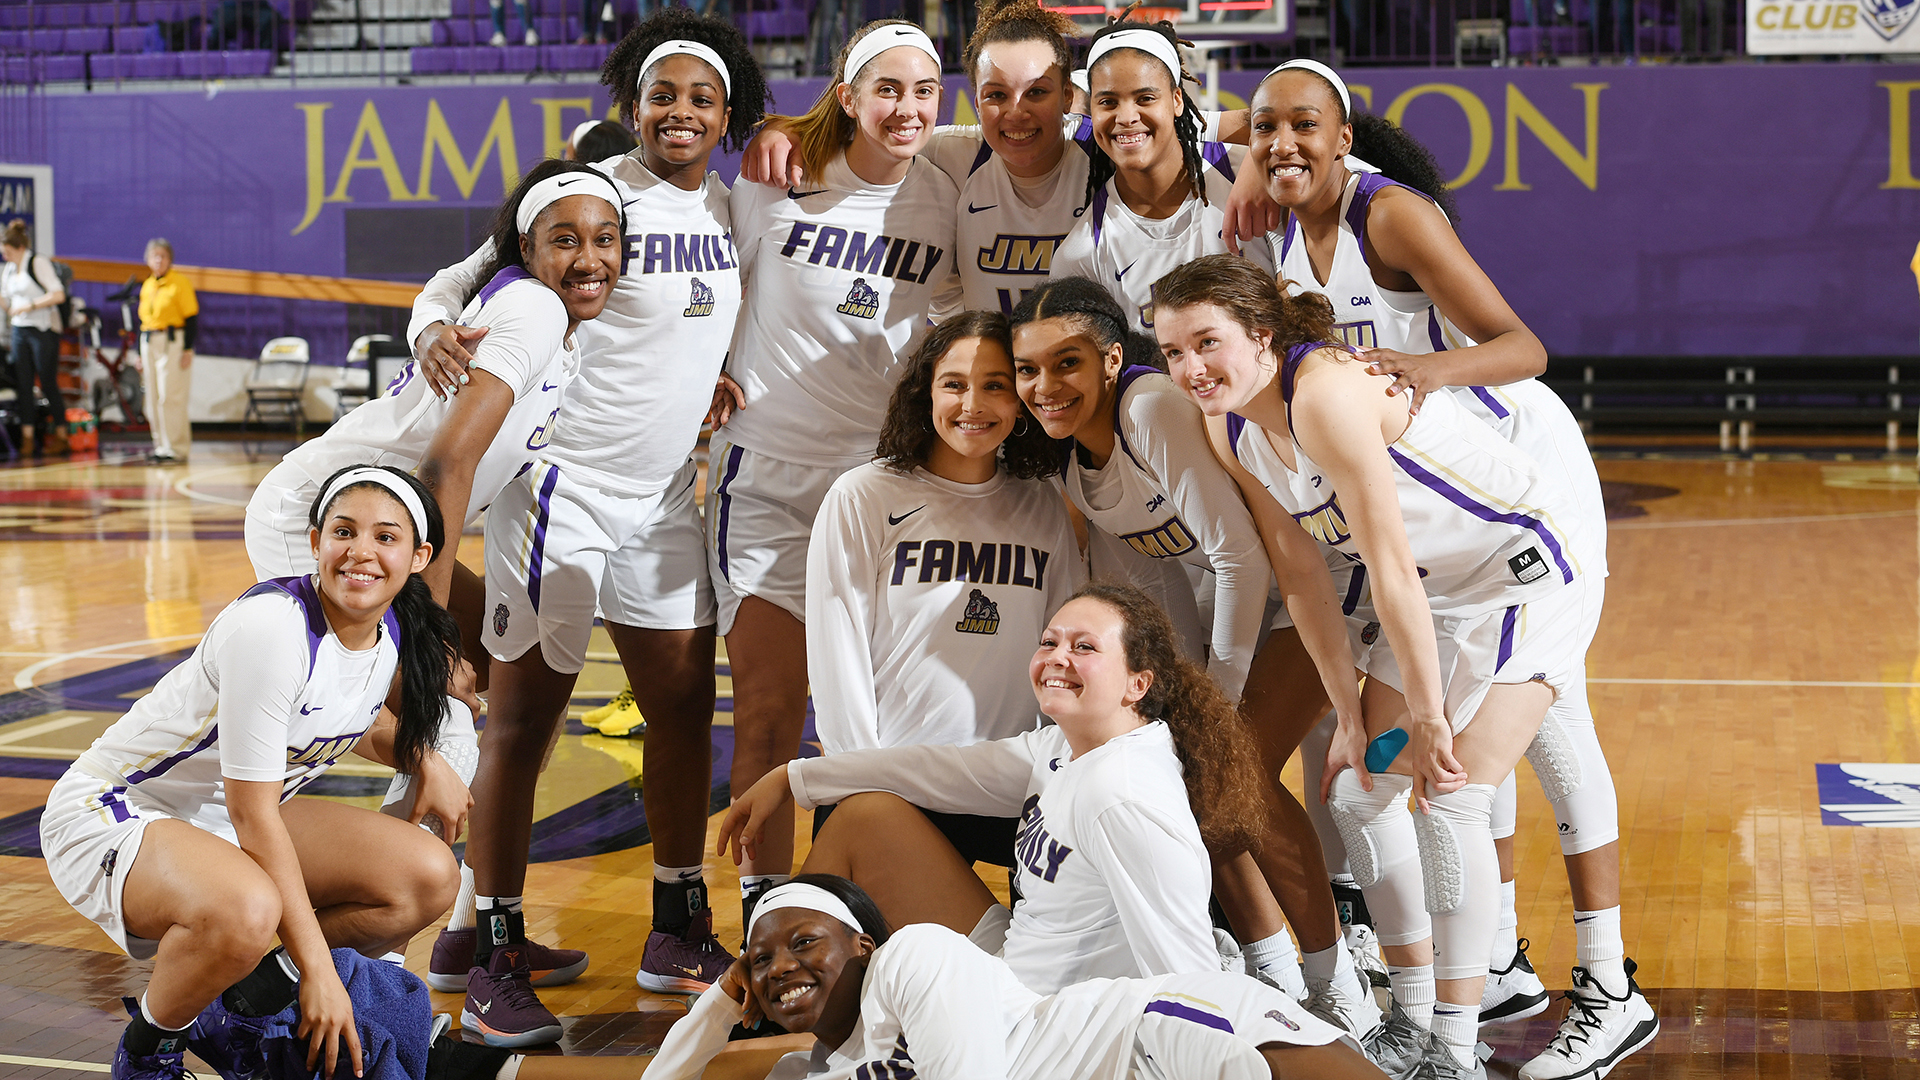 Women's Basketball: Dukes Advance To Second Round With Win Over Aggies